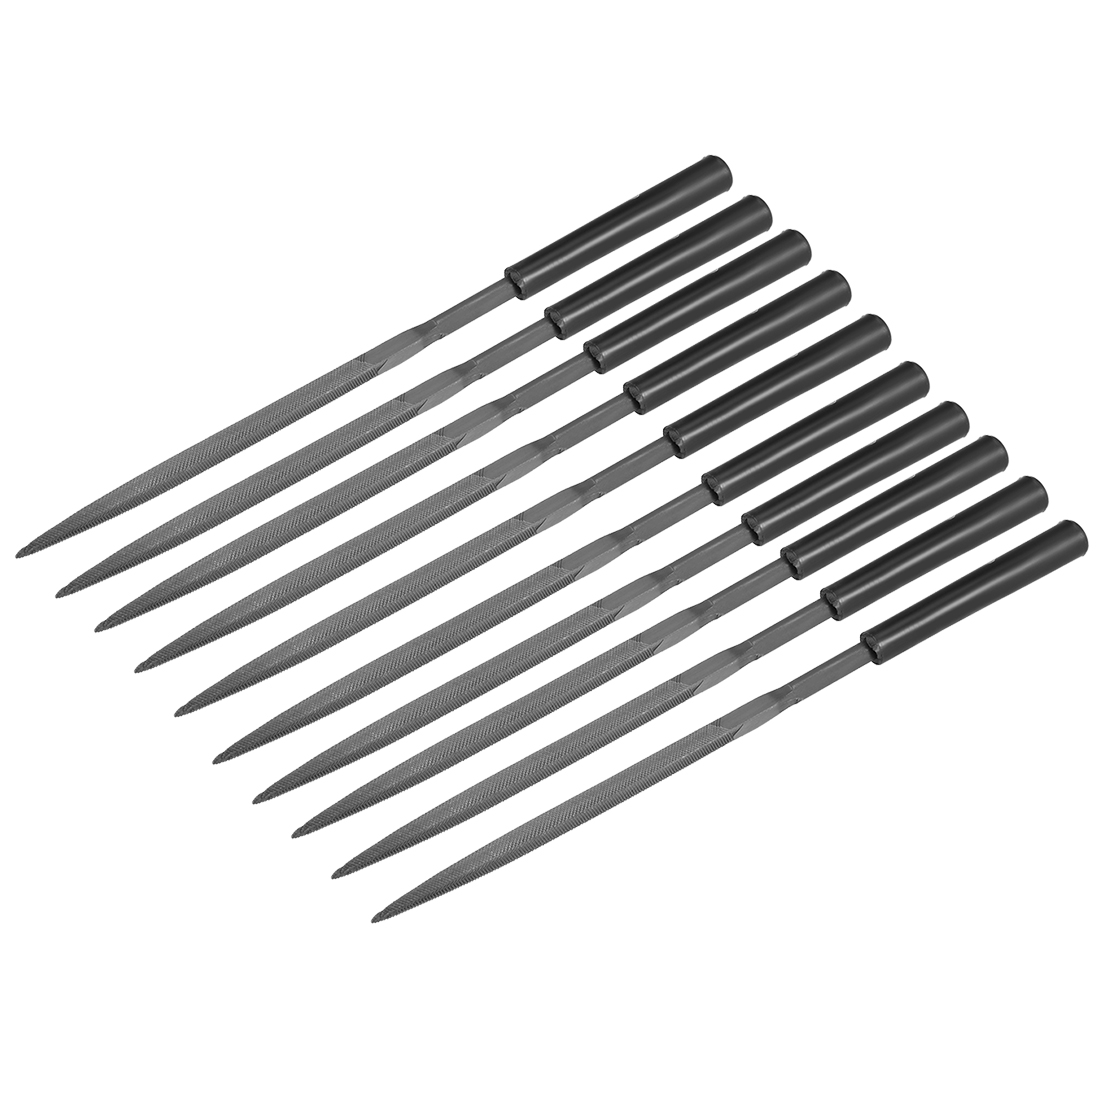 10Pcs Second Cut Steel Triangular Needle File with Plastic Handle, 5mm x 180mm